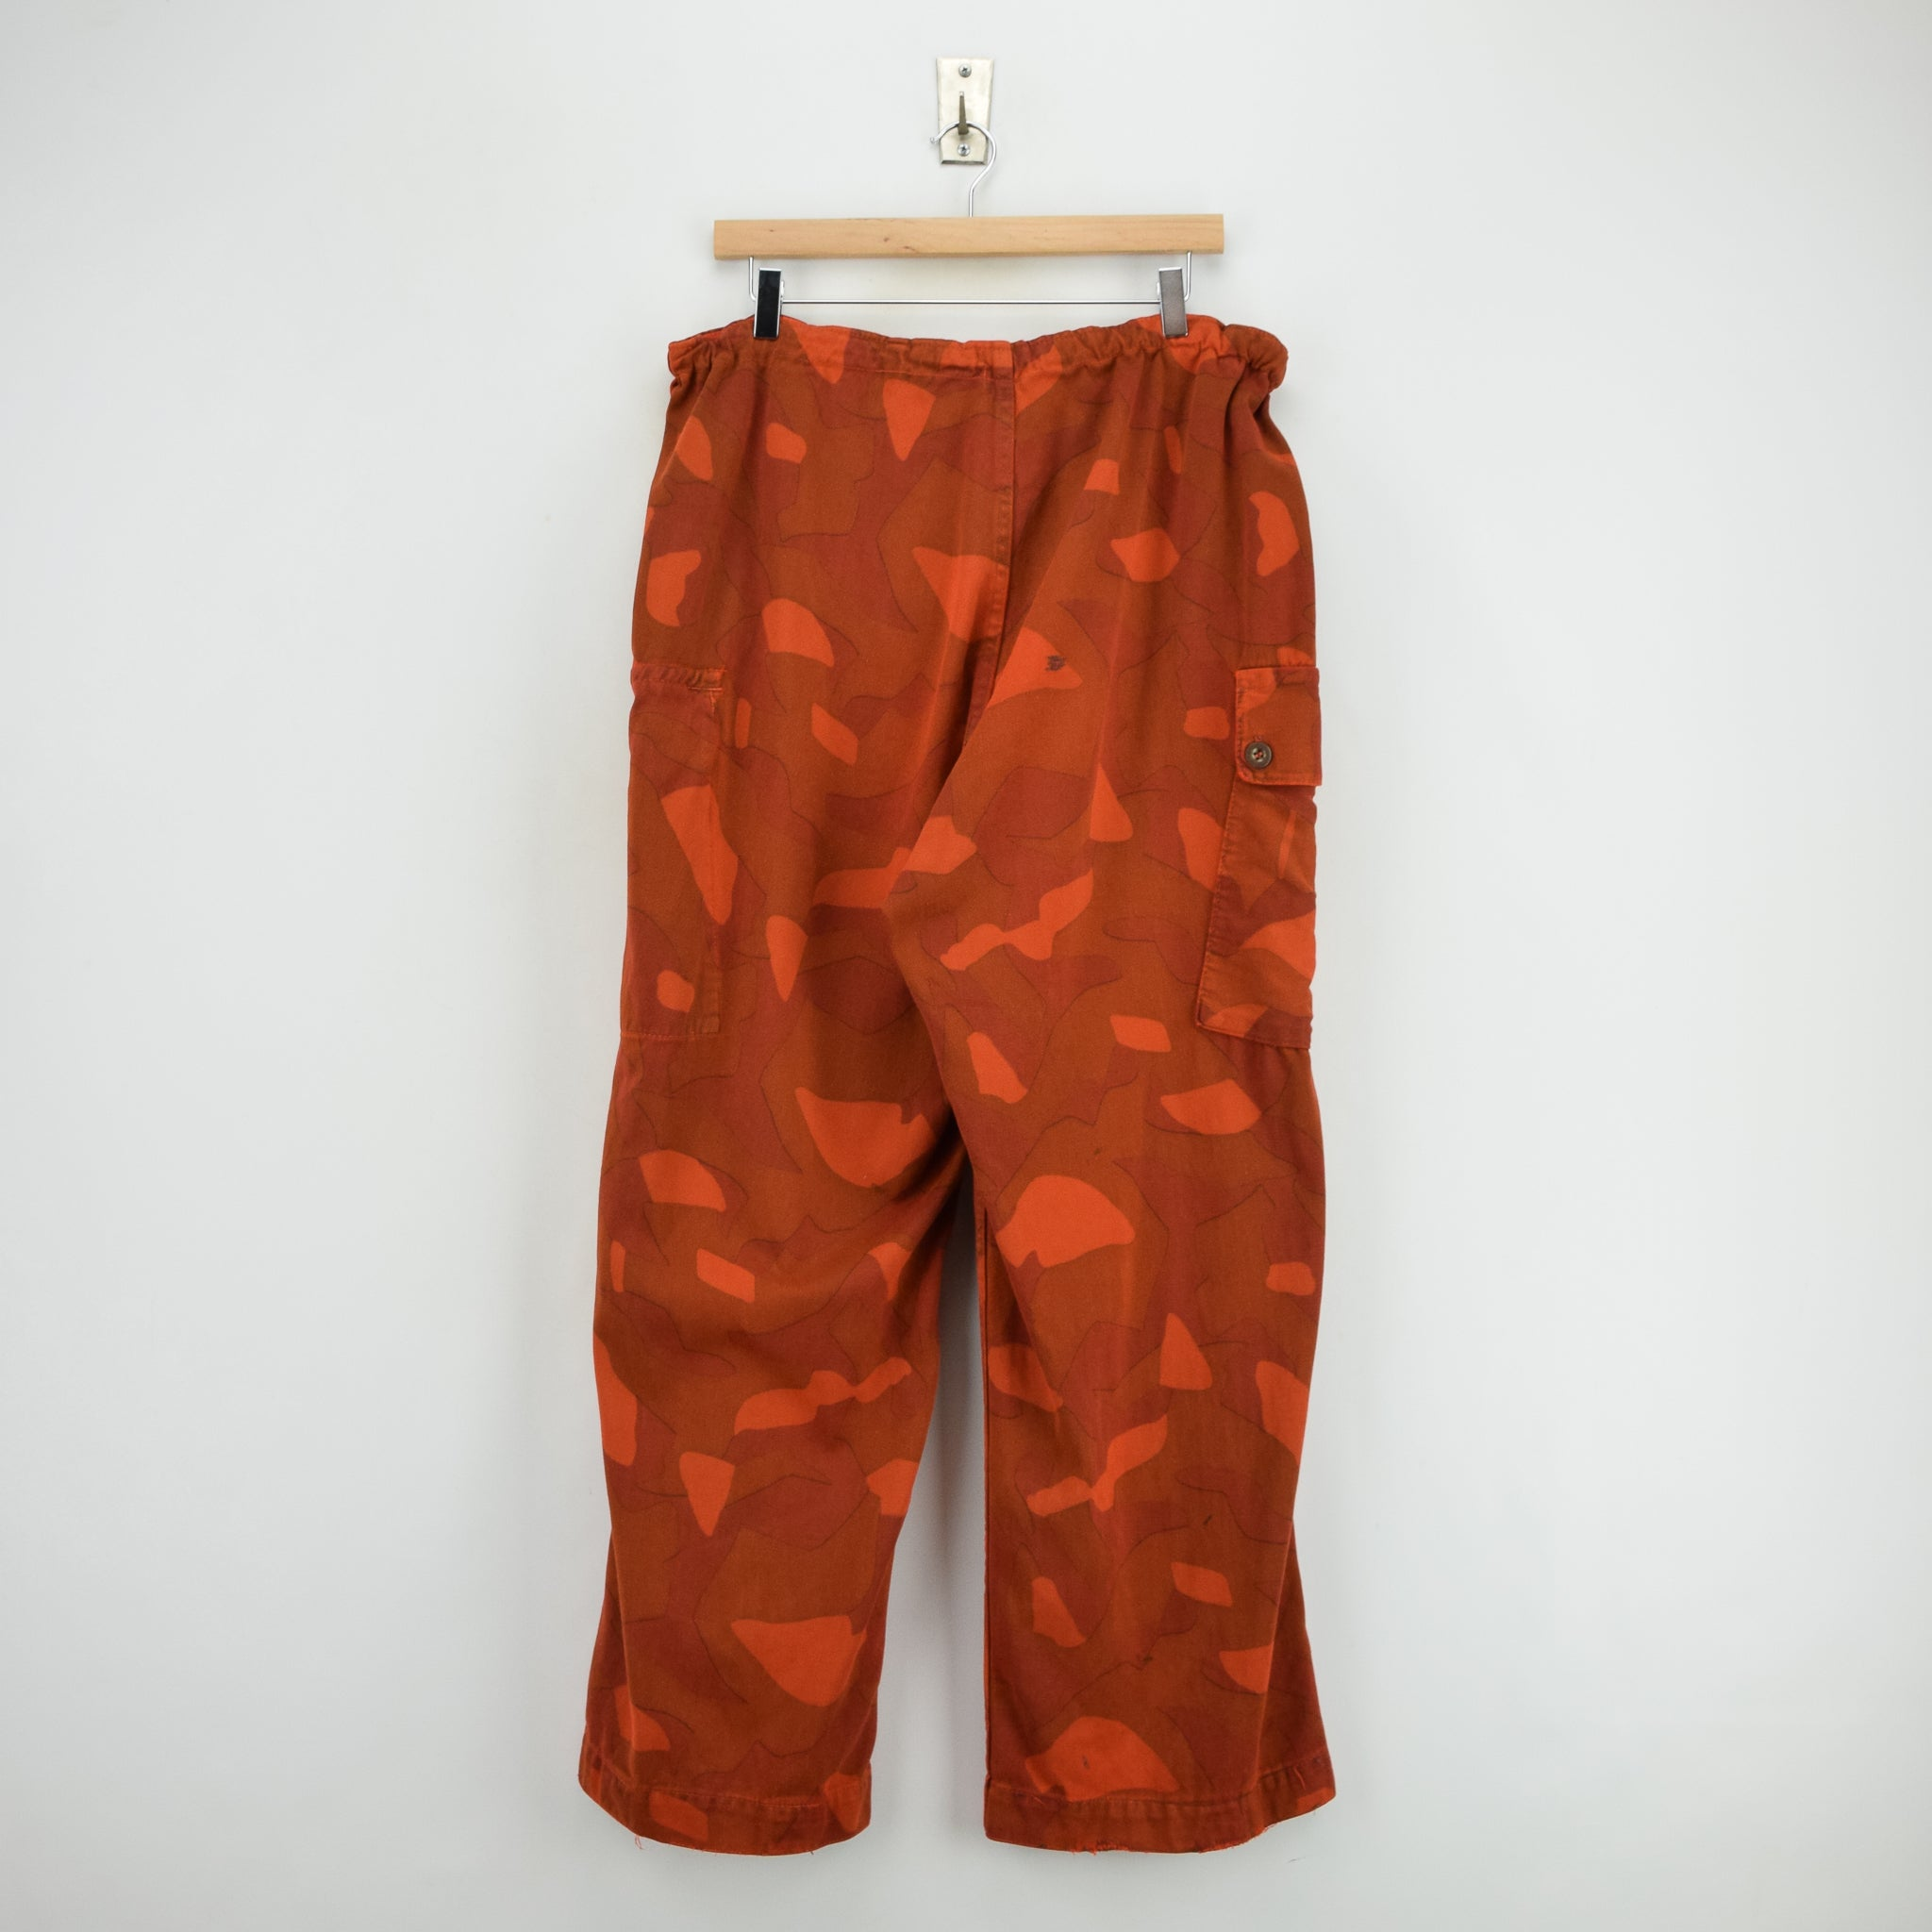 Vintage Military Finnish Army Orange Overdyed Camo Mountain Trousers 34-36 W back